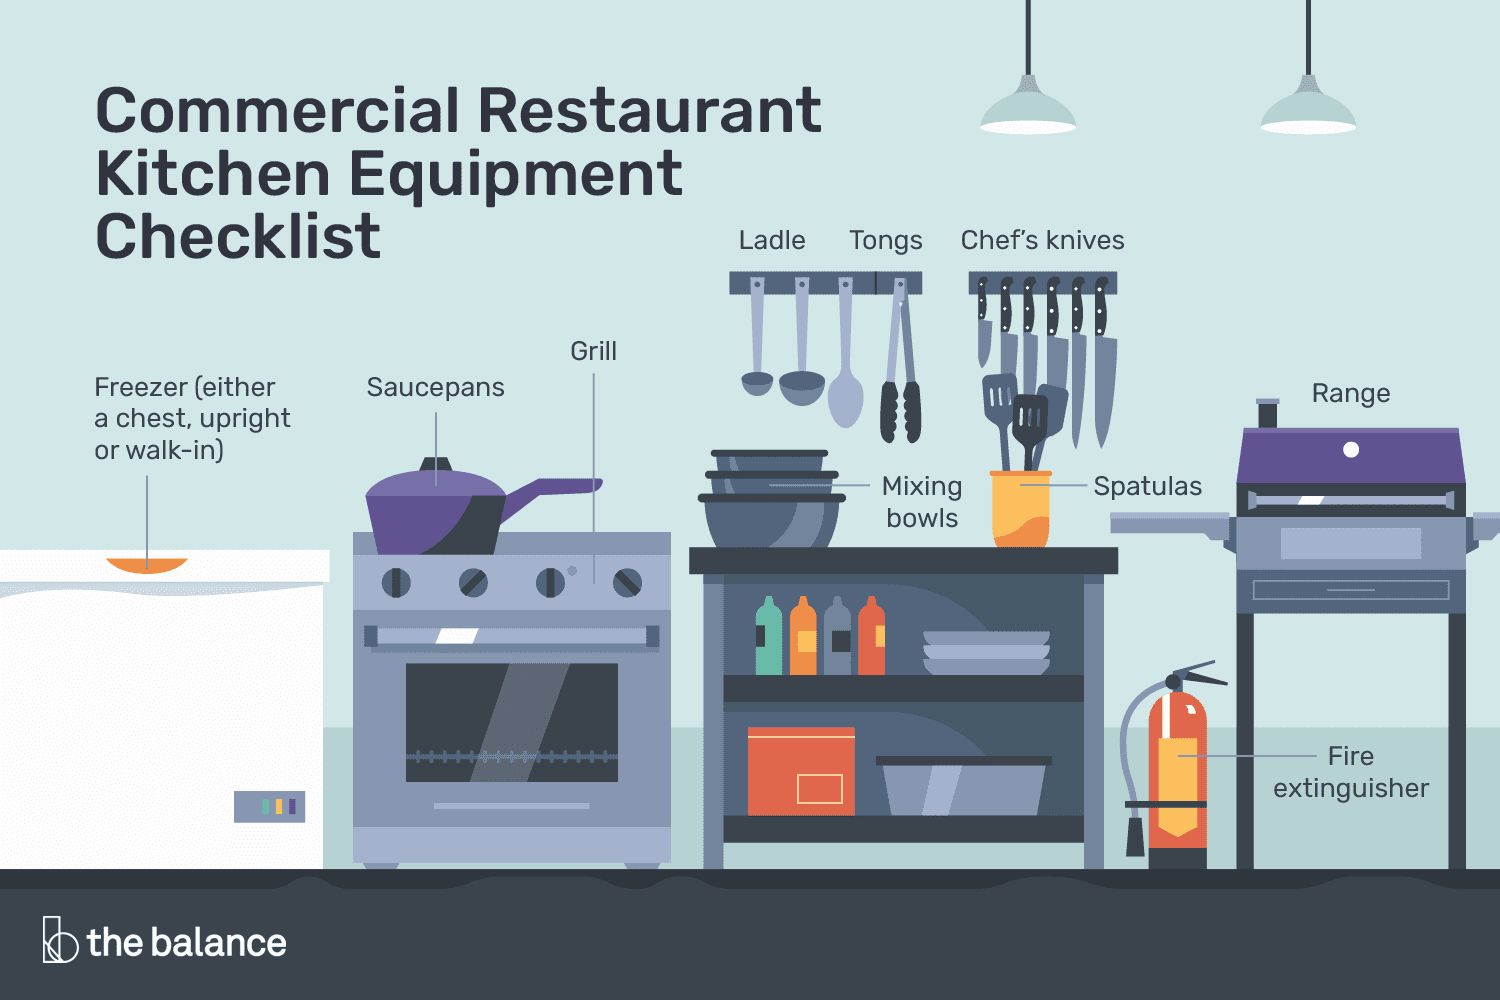 Kitchen Layout Templates 6 Different Designs: Commercial Restaurant Kitchen Equipment Checklist